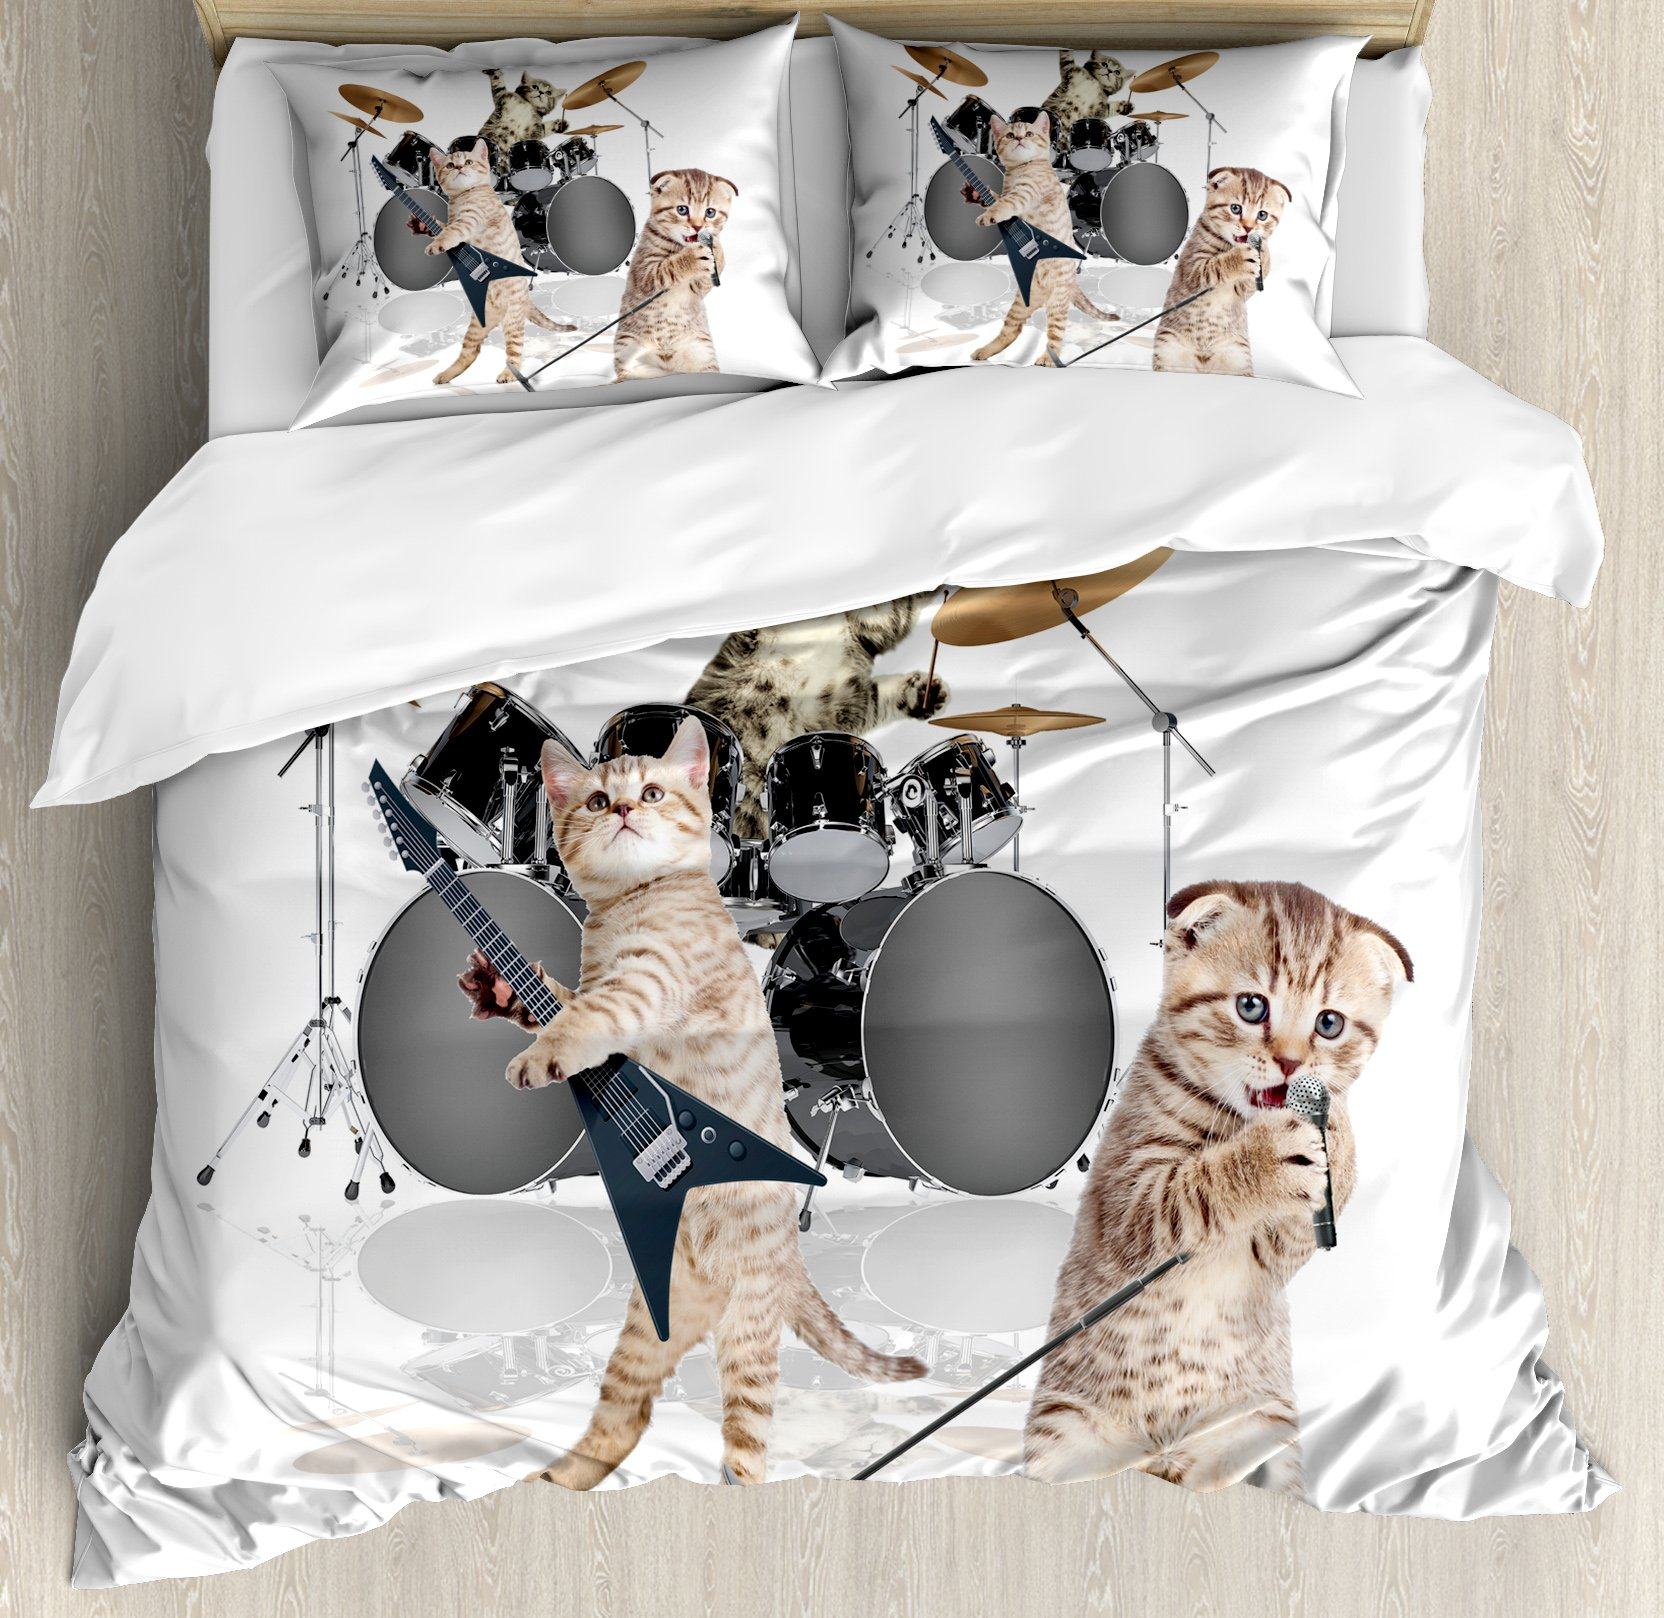 Ambesonne Animal Decor Duvet Cover Set, Cool Fancy Hard Cute Rocker Band of Kittens with Singer Guitarist Cats Print, 3 Piece Bedding Set with Pillow Shams, Queen/Full, Multicolor